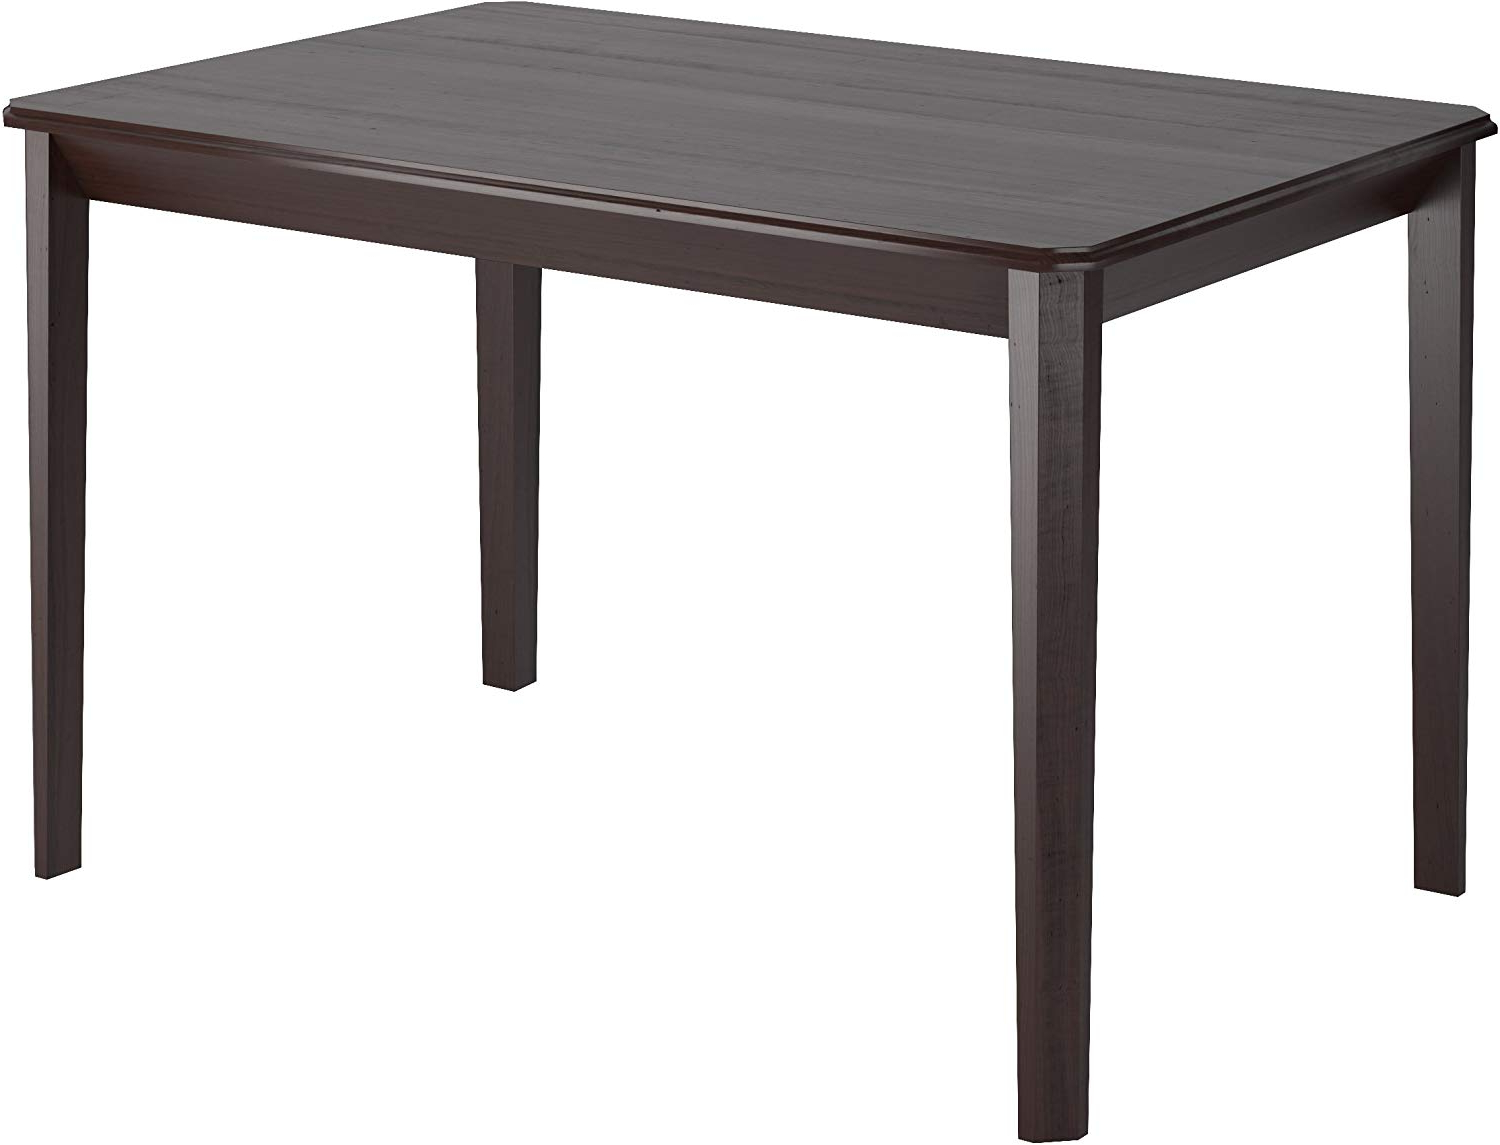 "Amazon – Corliving Atwood Dining Table, 47"", Cappuccino With Regard To Widely Used Atwood Transitional Square Dining Tables (View 1 of 30)"